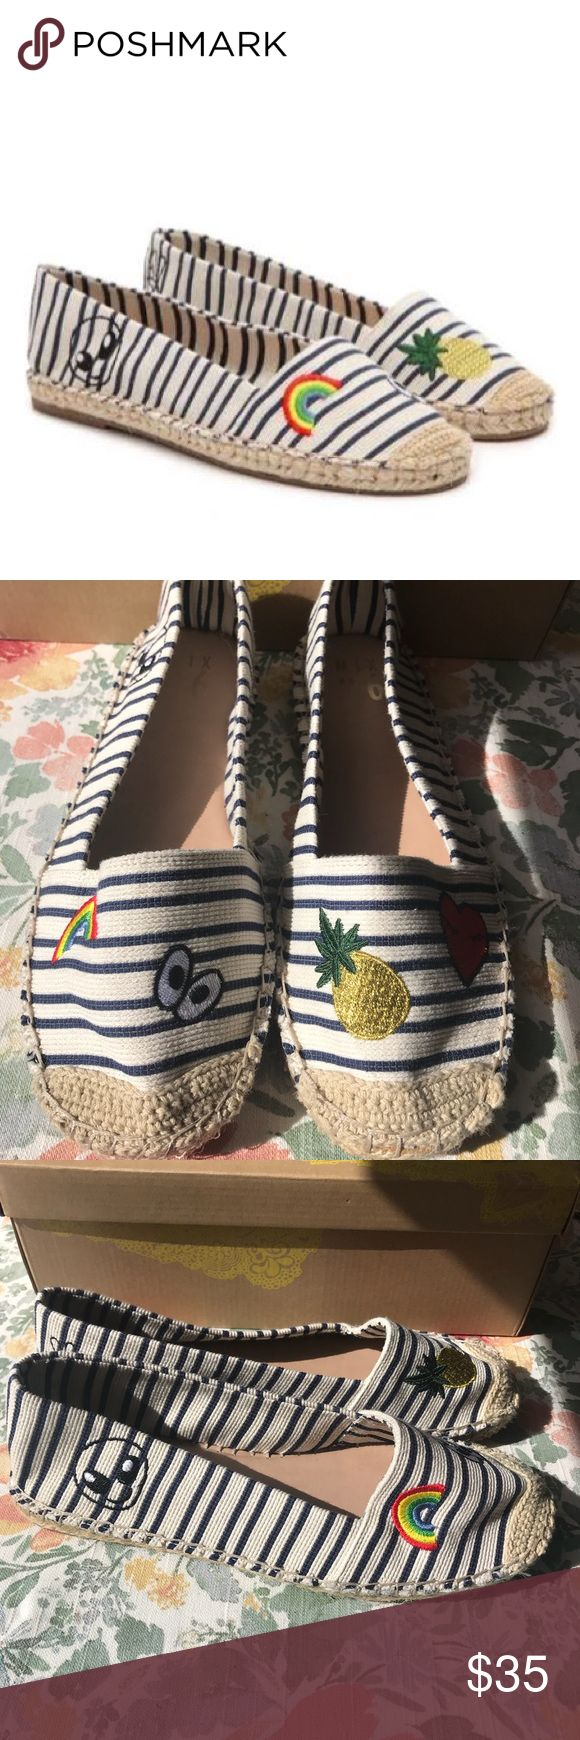 ❤️NWB❤️ Mix No6 Lemma Navy Espadrilles Size 6 ❤️NWB Mix No6 Lemma Navy Espadrilles Size 6❤️ 🙌🏽 Material Upper 🙌🏽 Embroidered with Smiley Faces and Emojis  🙌🏽 Round Toe 🙌🏽 Cushioned Insole 🙌🏽 Espadrille Midsole 🙌🏽 Run big - More of a Size 7-7 1/2 🤩 Super Fun and Playful 🤩 Mix No. 6 Shoes Espadrilles